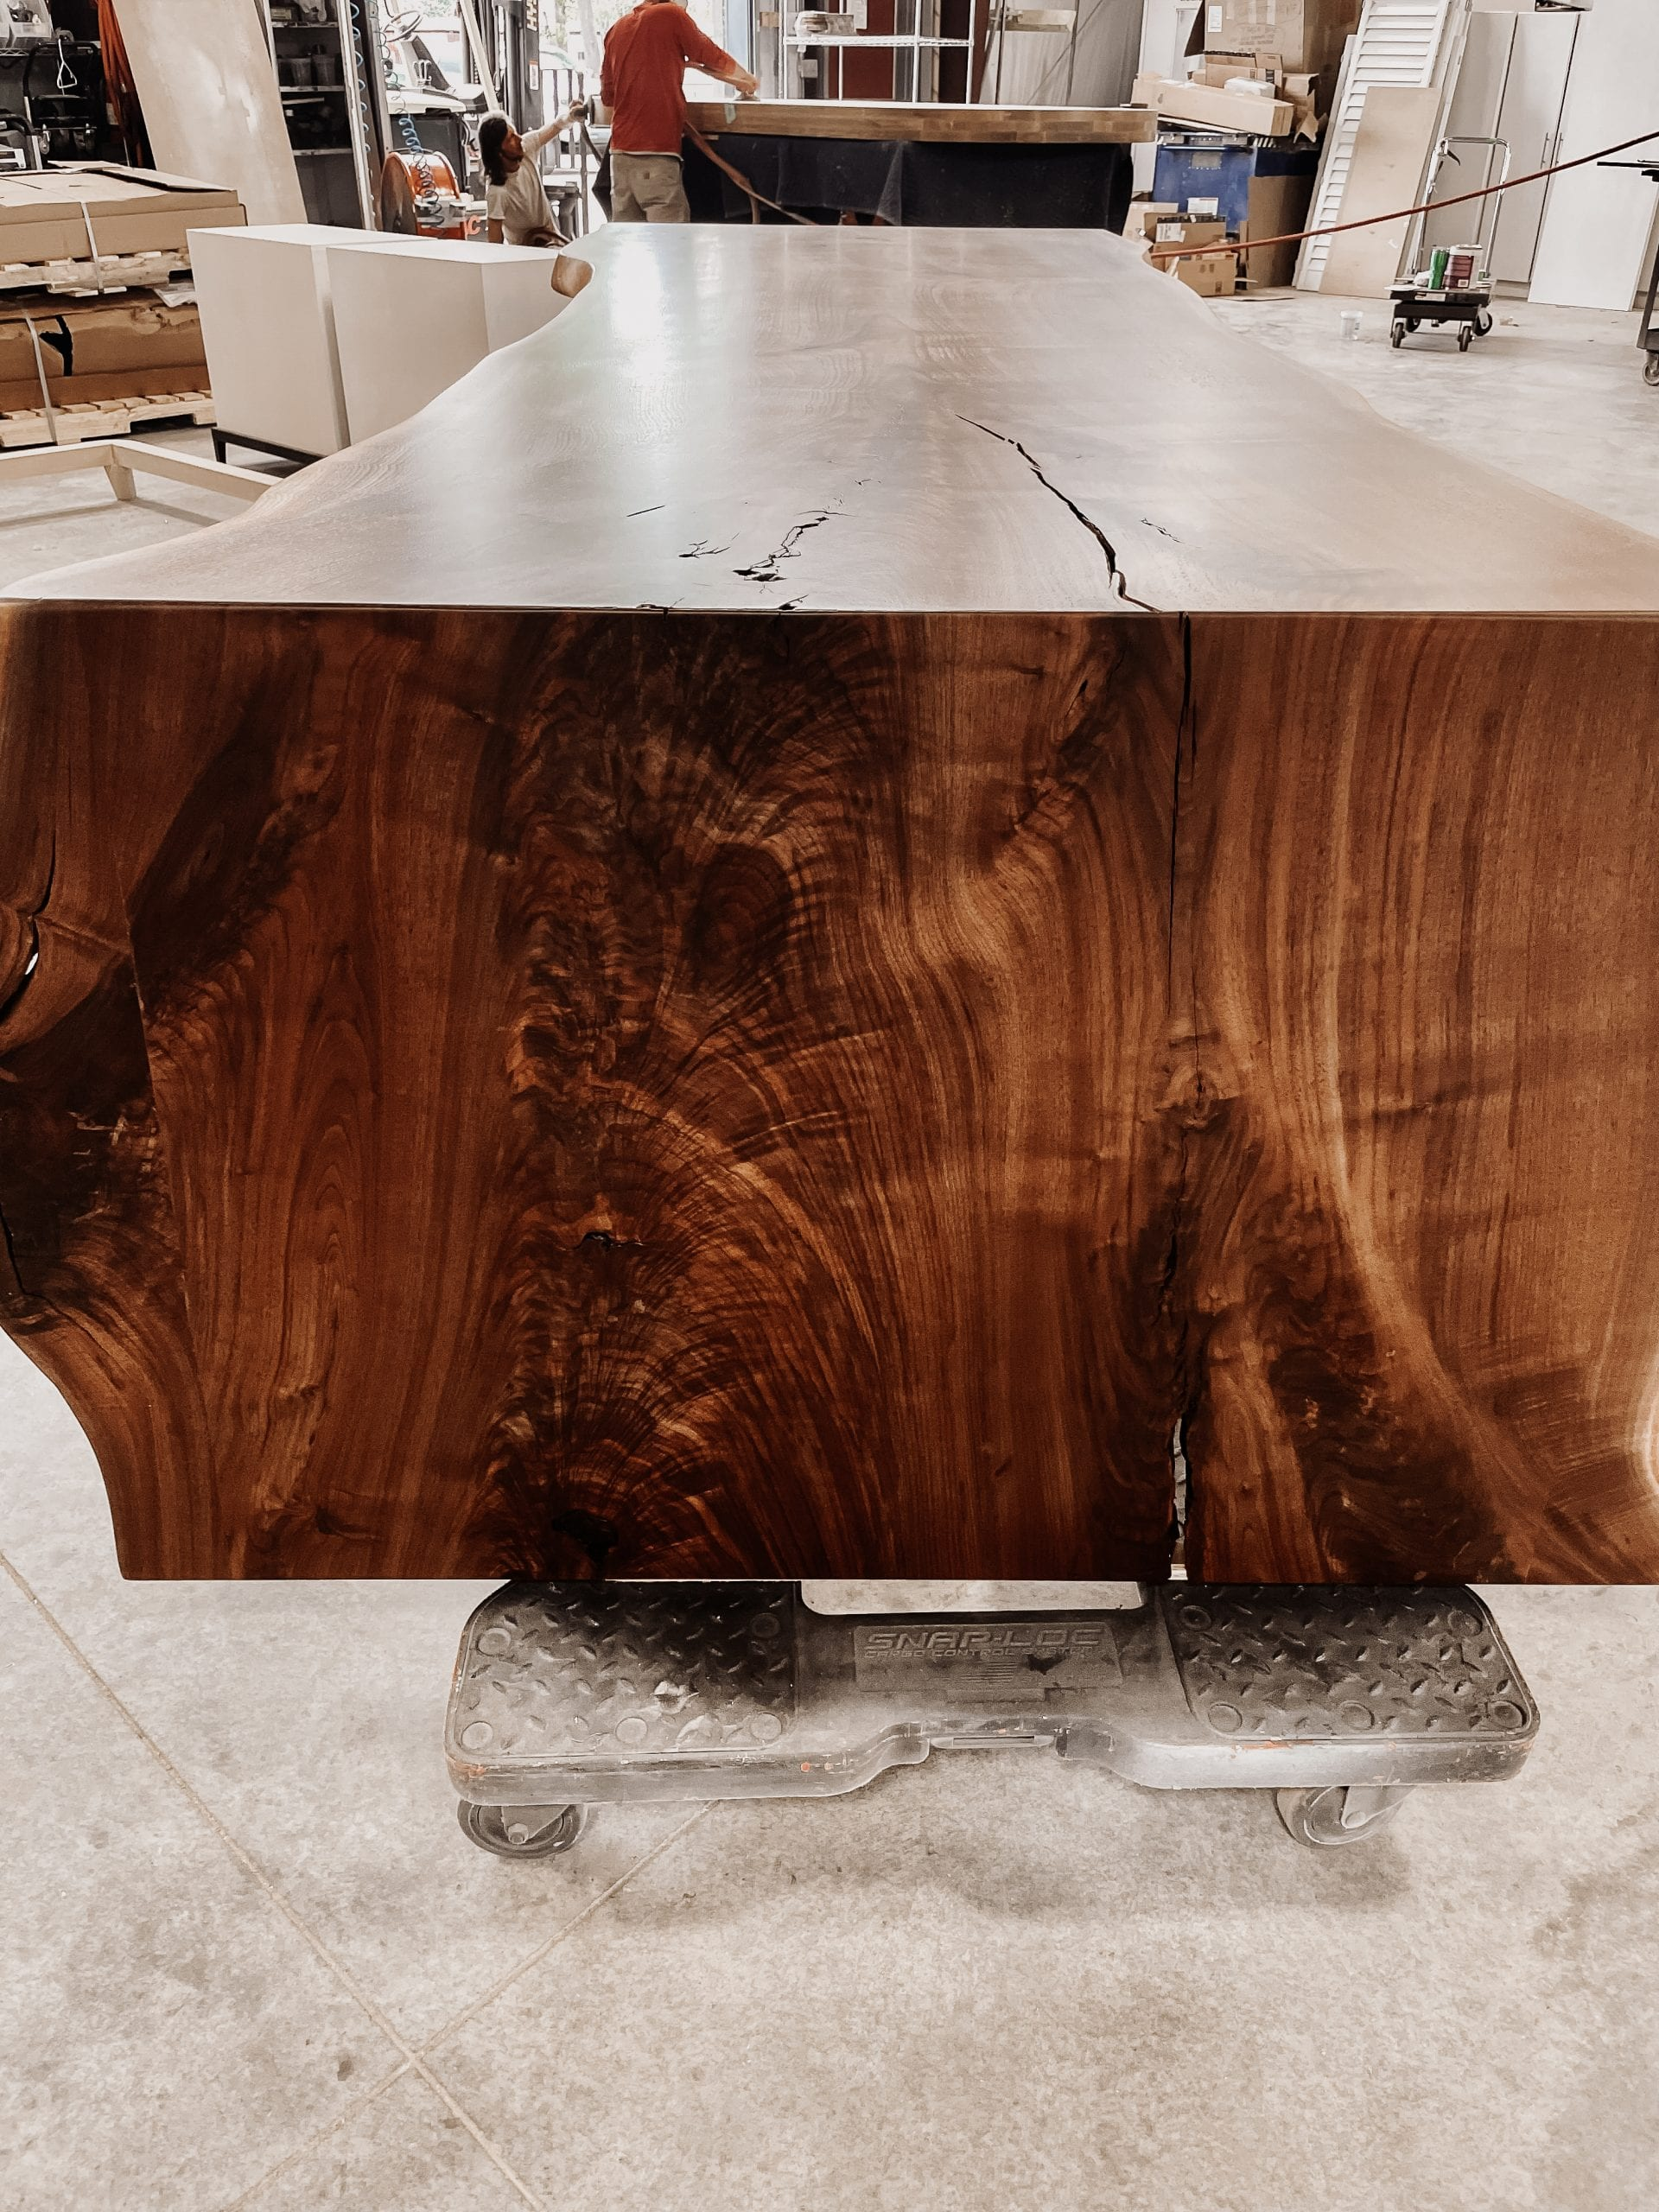 10' x 4' figured walnut dining table side view